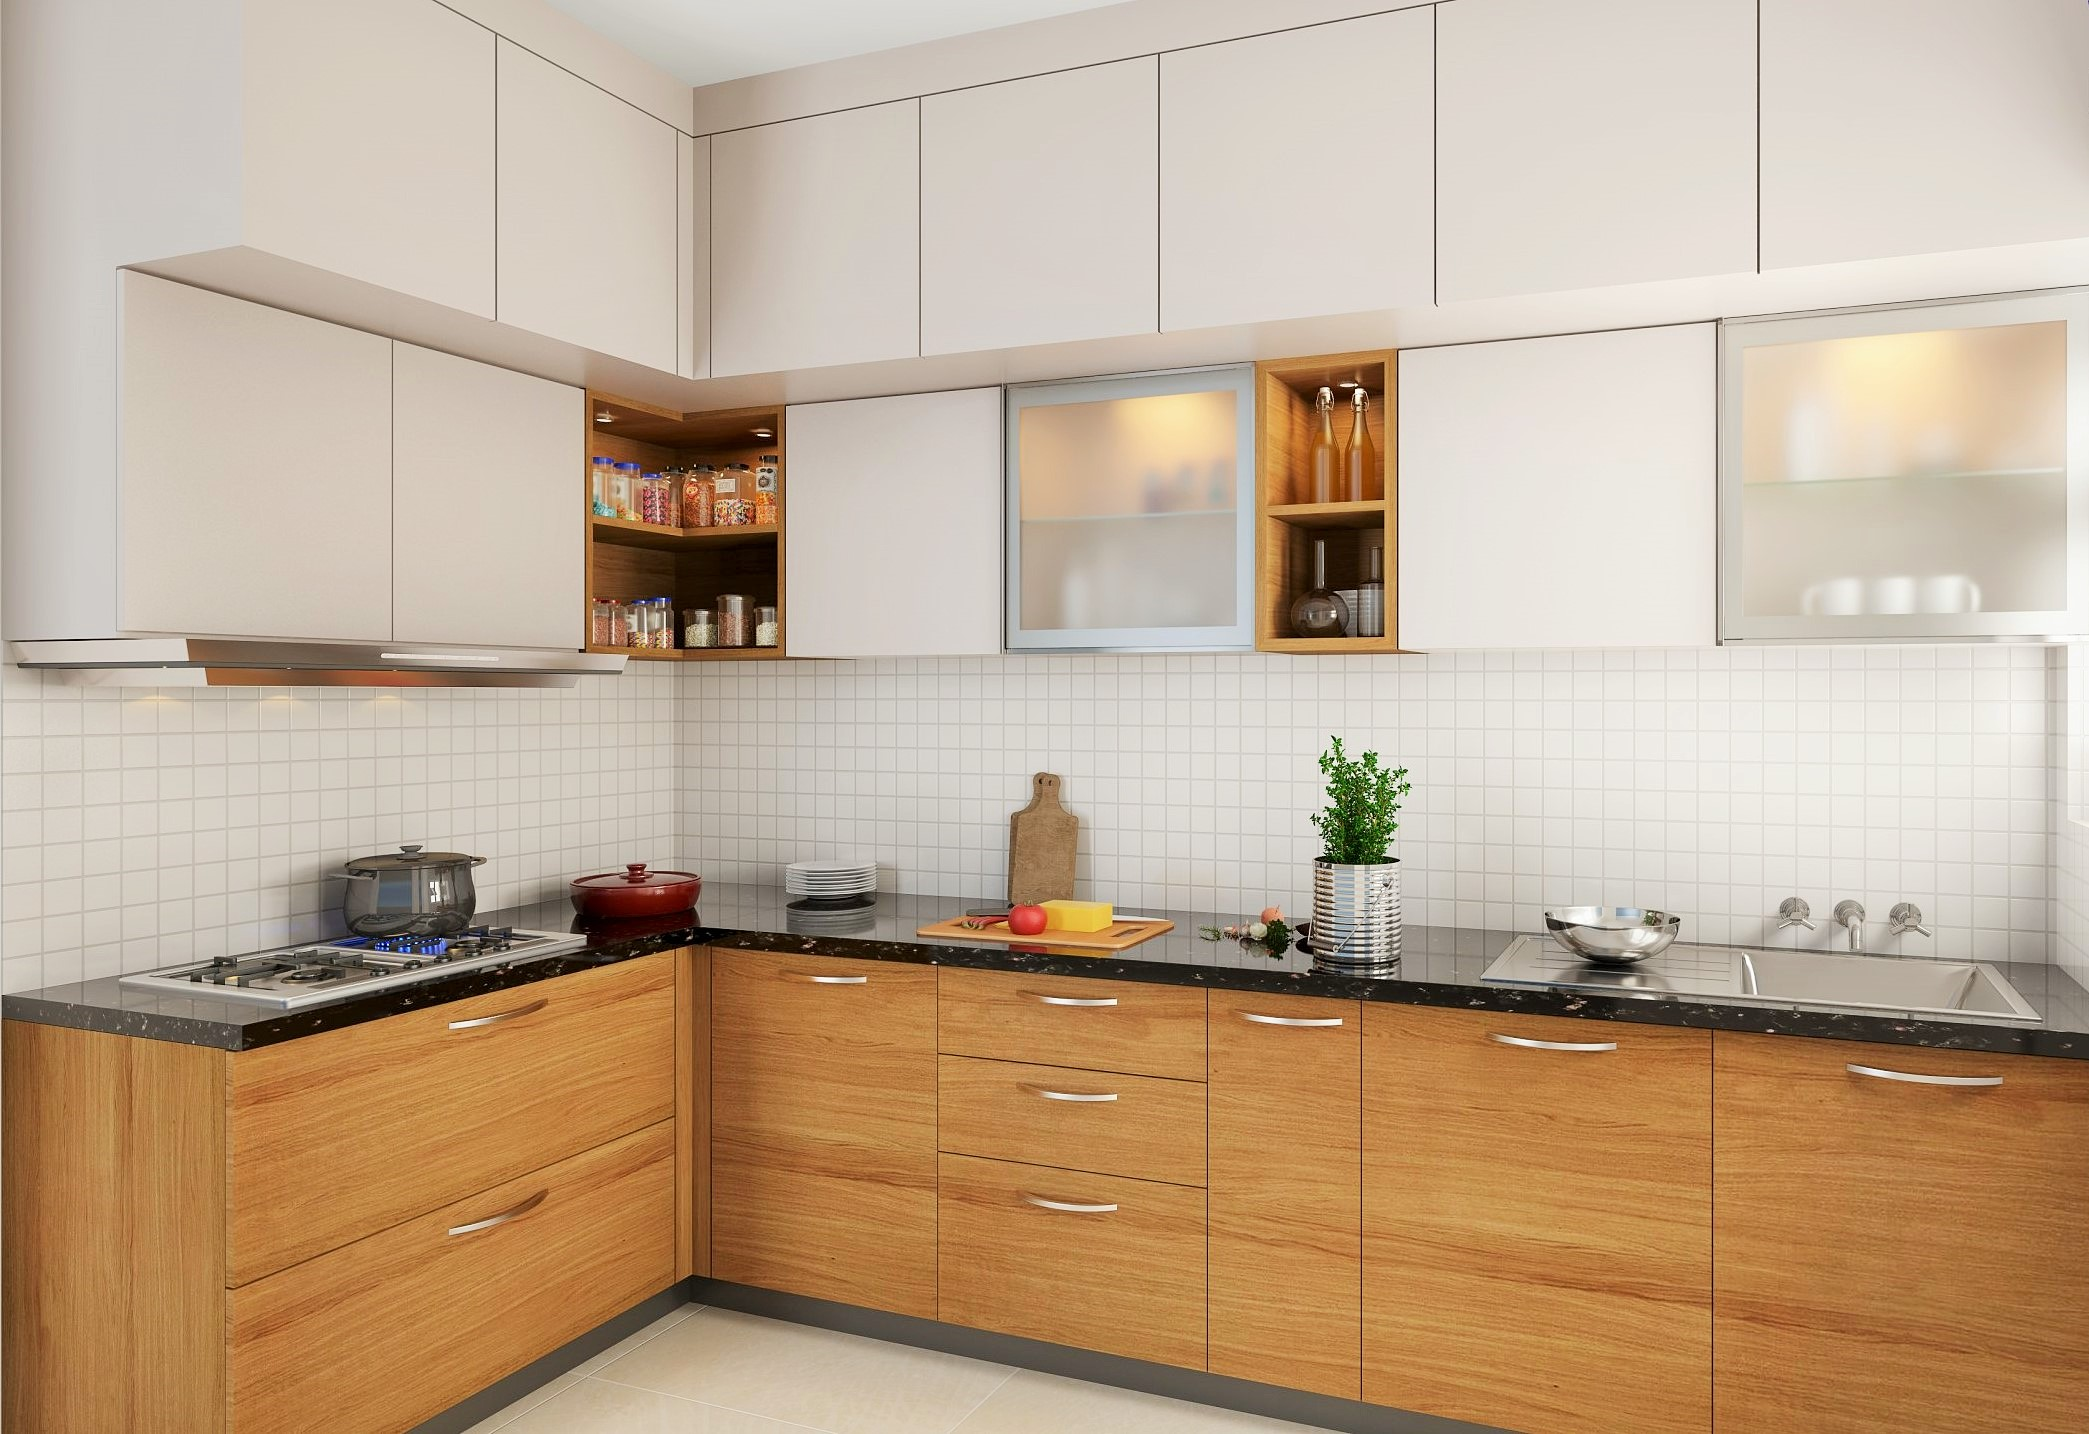 13 Very Small Kitchen Design Ideas That Make A Big Impact